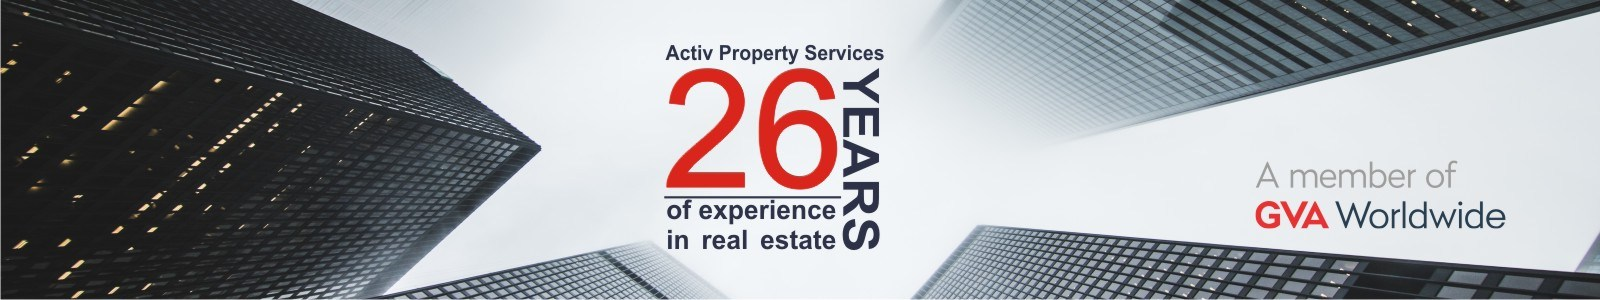 Activ Property Services